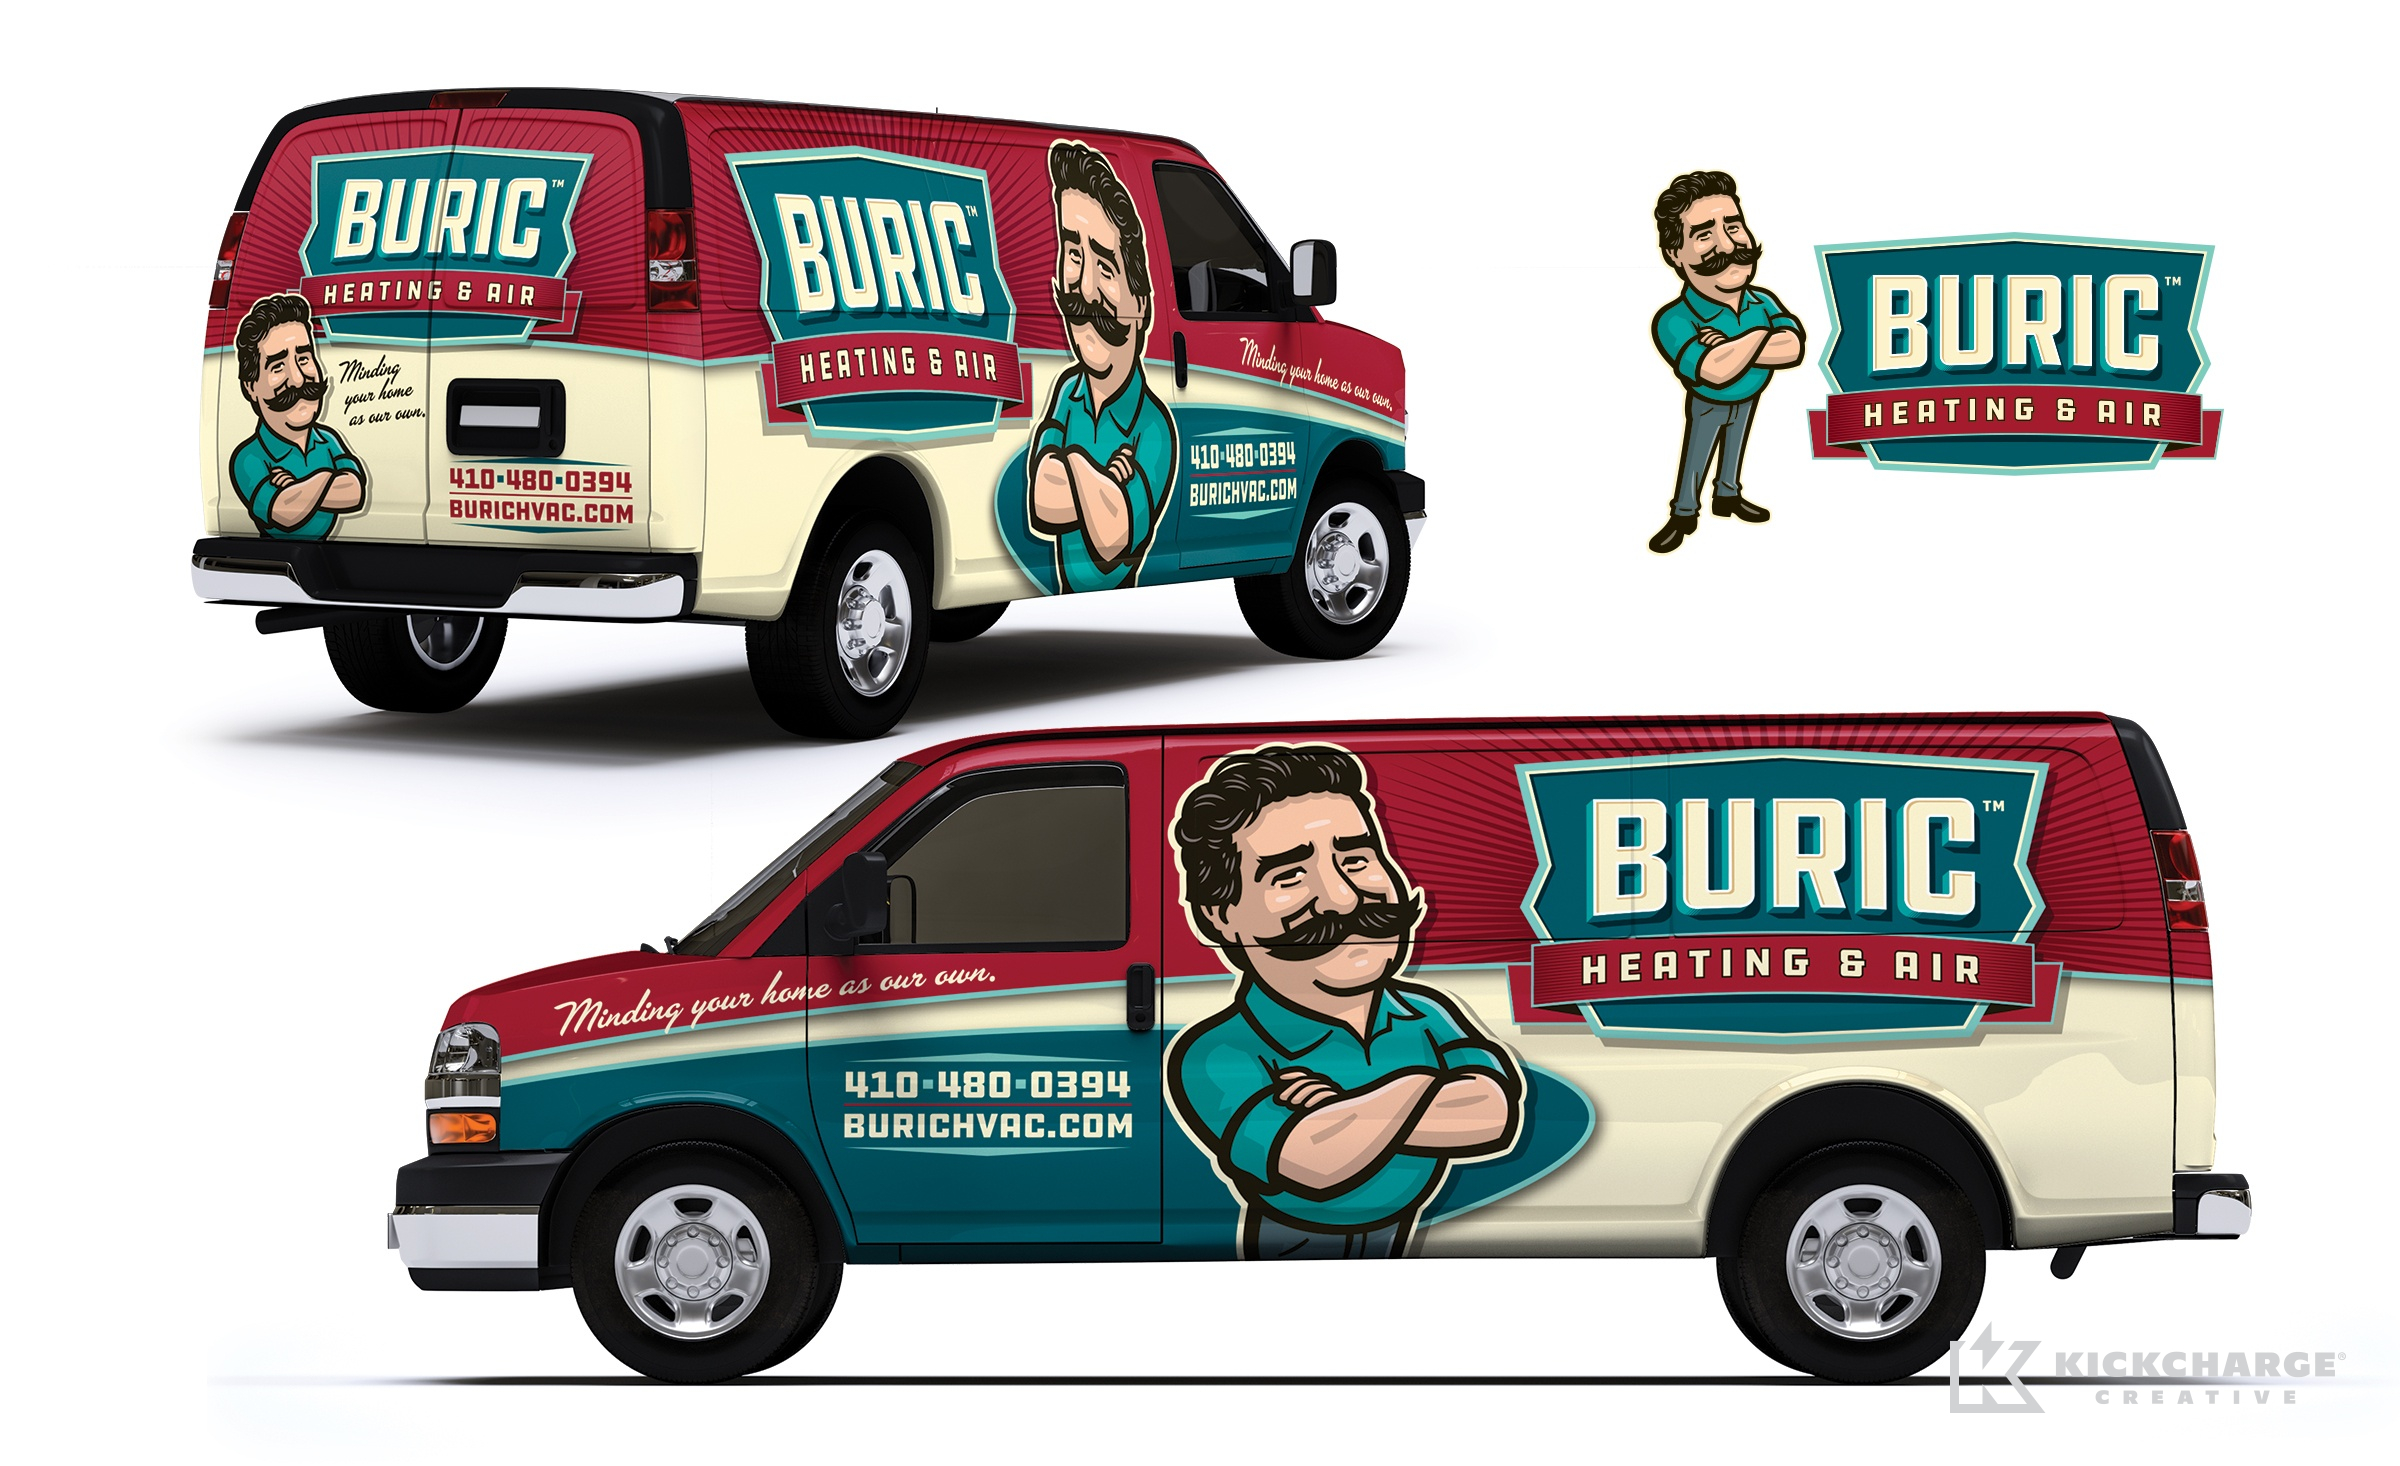 Buric Heating & Air